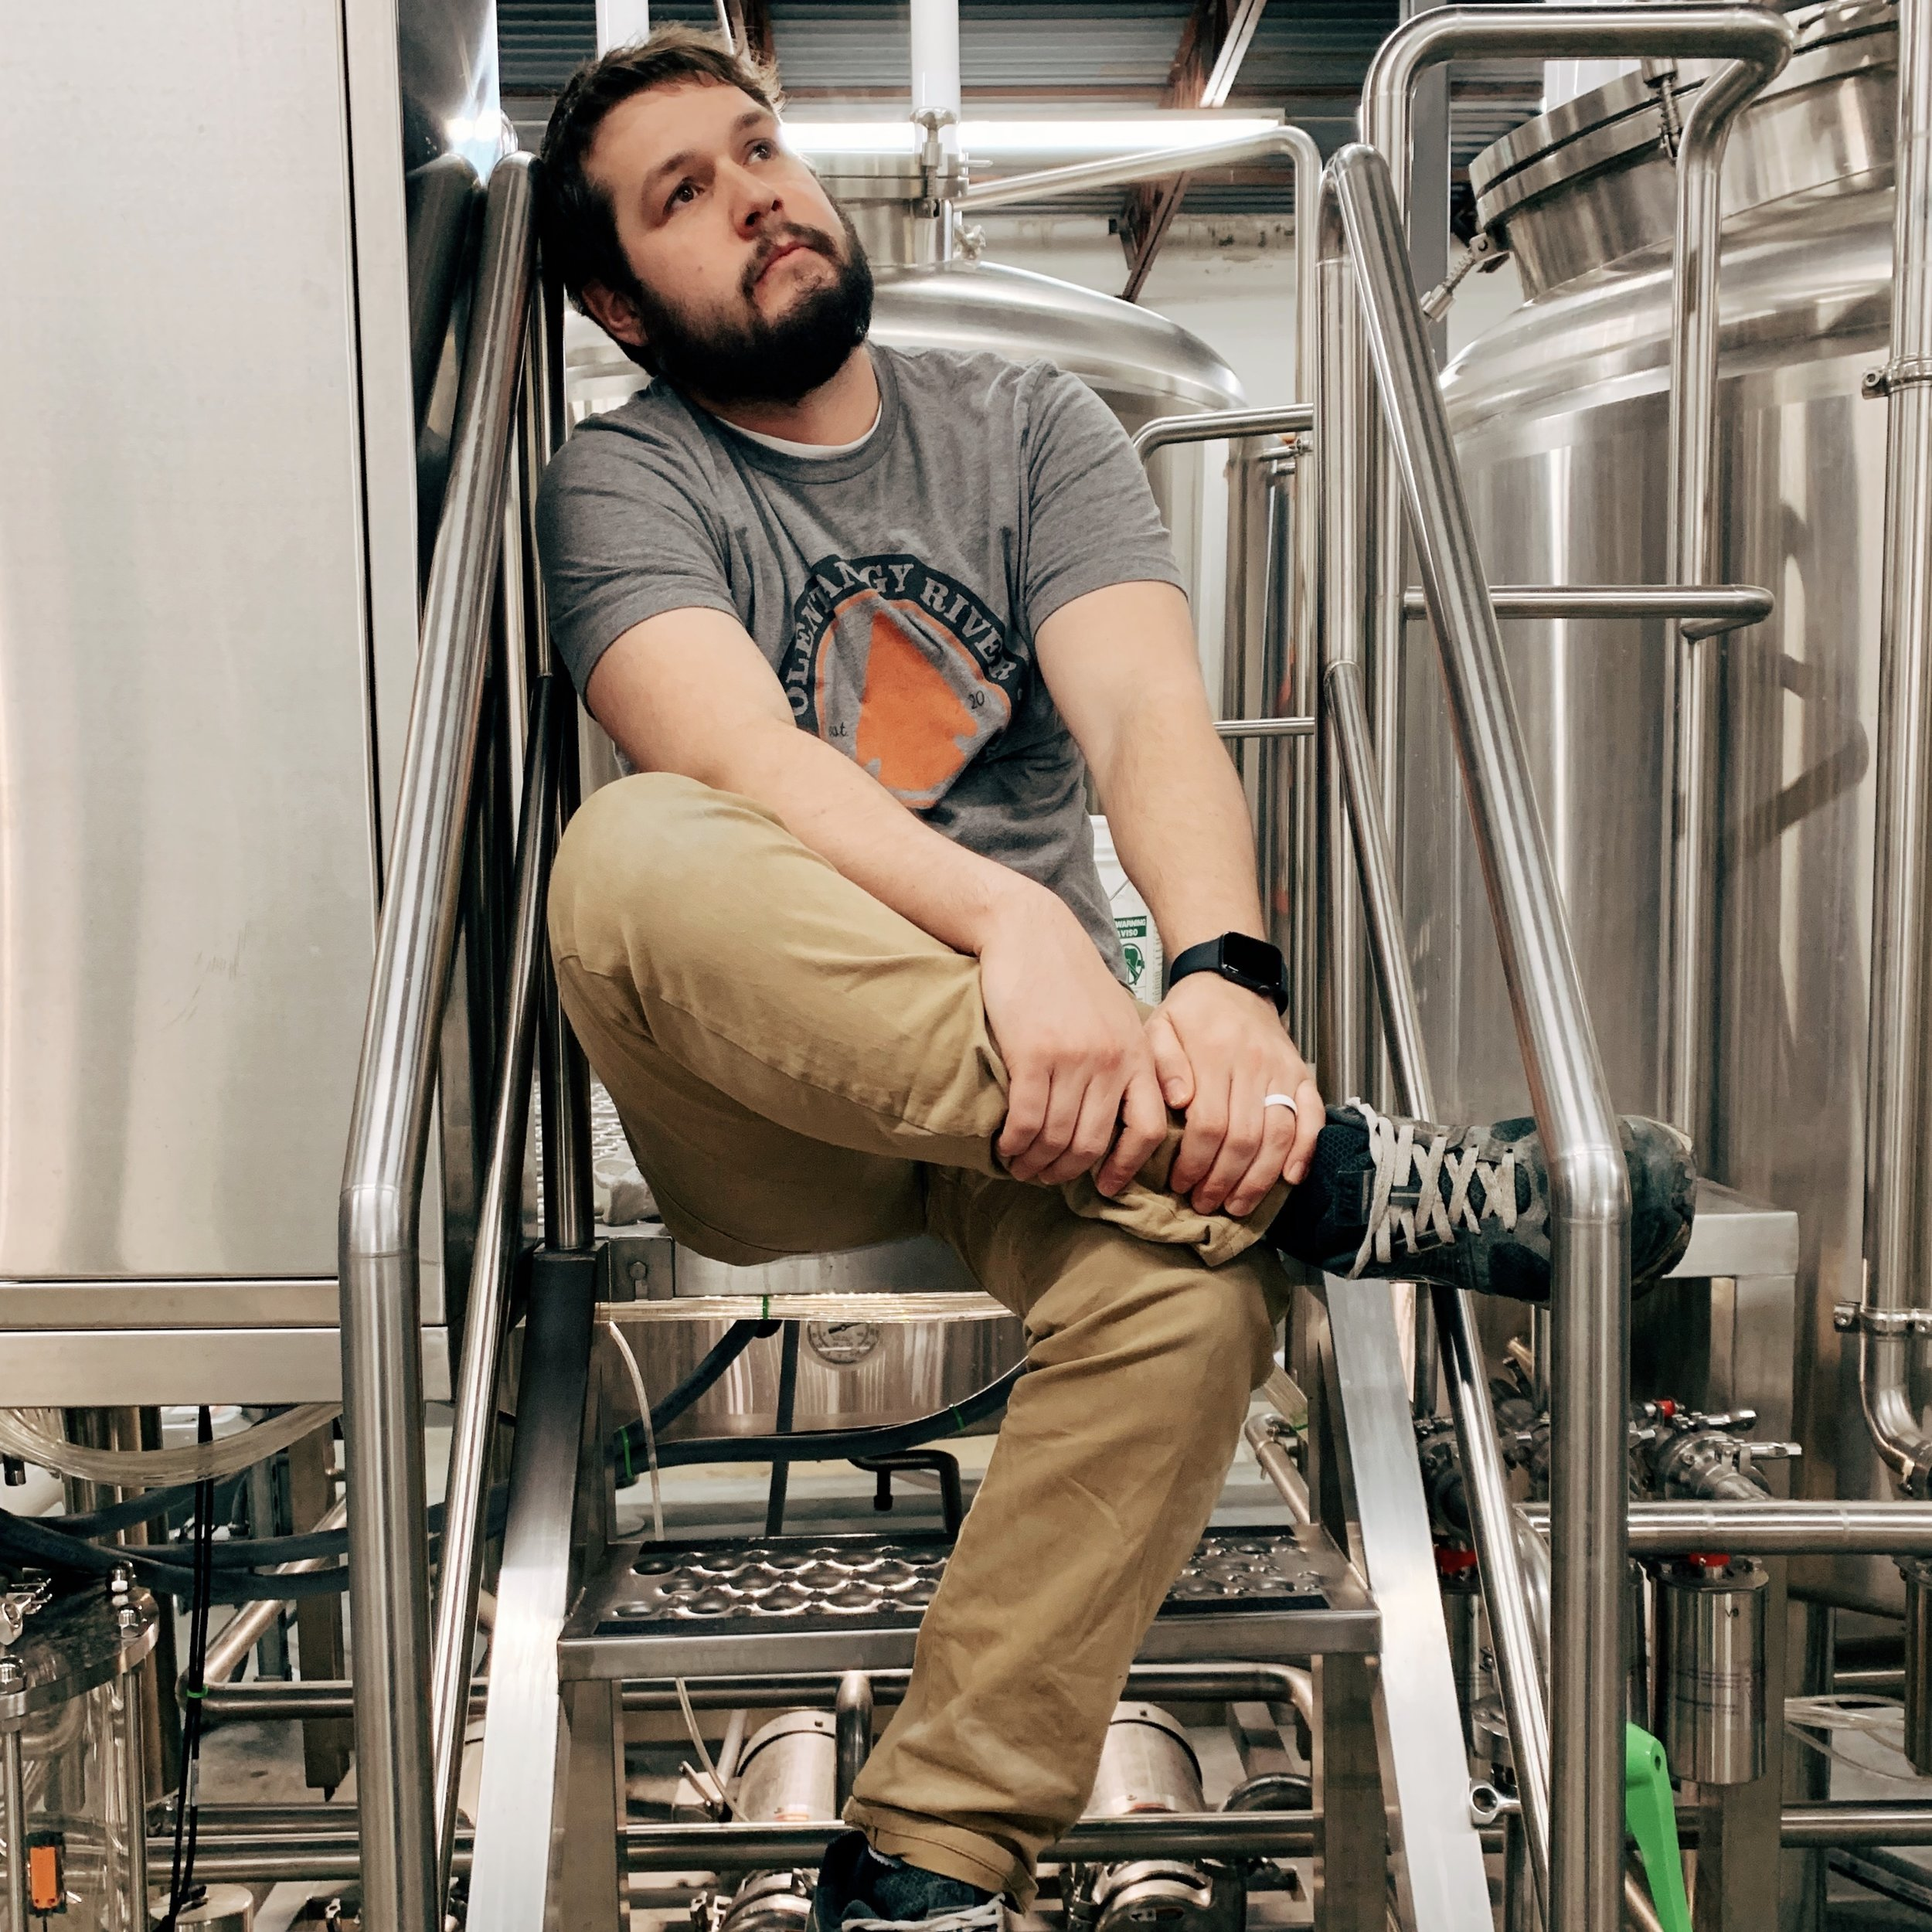 Colin - Cellar Manager  Hometown - Westerville, OH  Hobbies - Ford Mustangs, Spending time with wife & daughter, shooting skeet  Favorite Band - Destinys Child